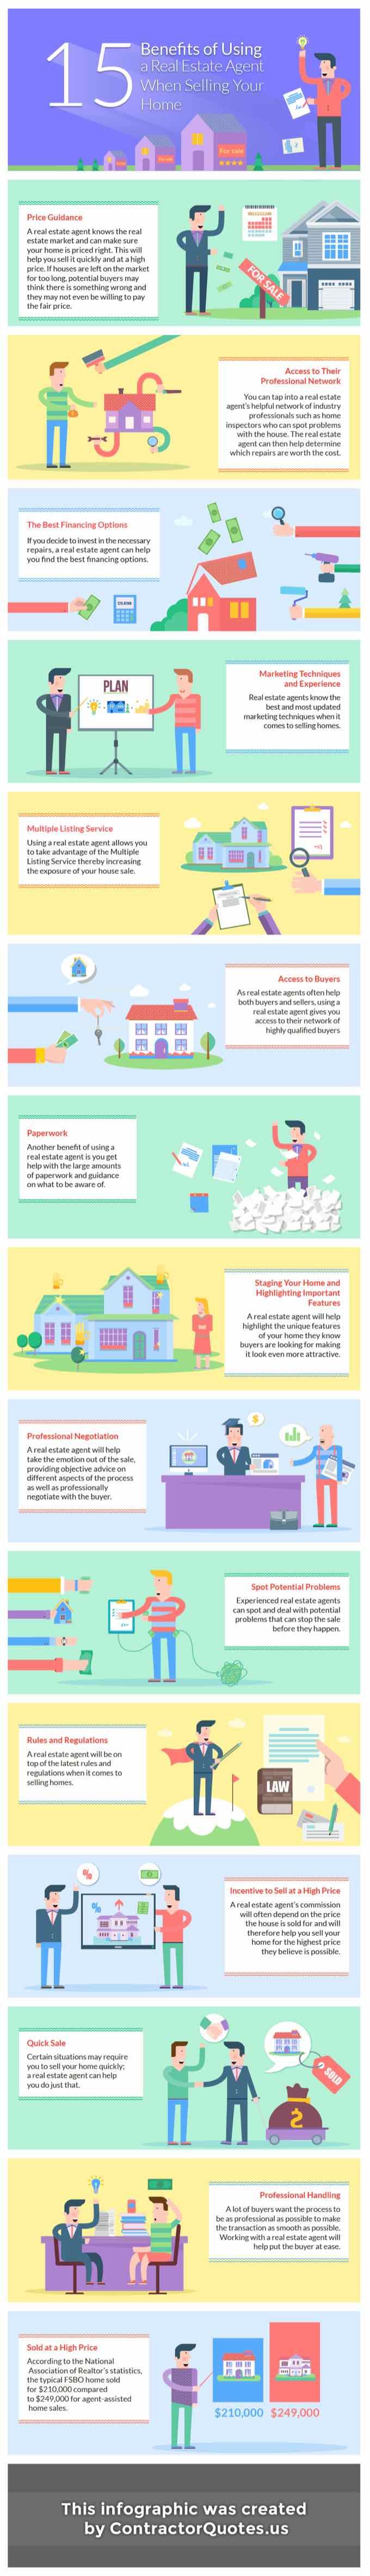 15 Benefits of Hiring A Listing Agent To Sell Your Home  (Infographic) Latest Posts Winnipeg Home Selling News & Tips